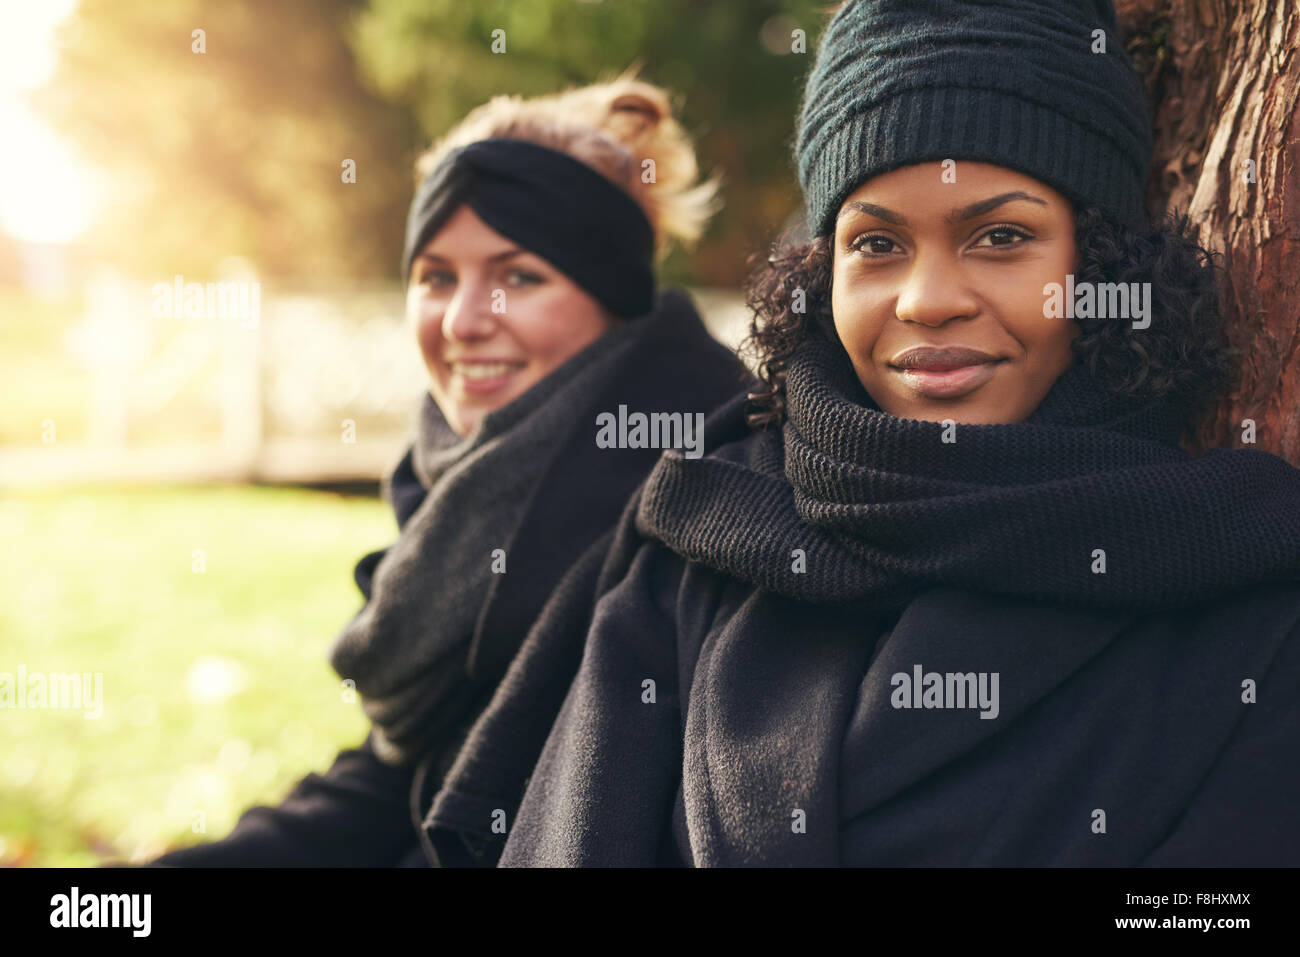 Close-up of two young women leaning on tree trunk dans le parc en automne Photo Stock